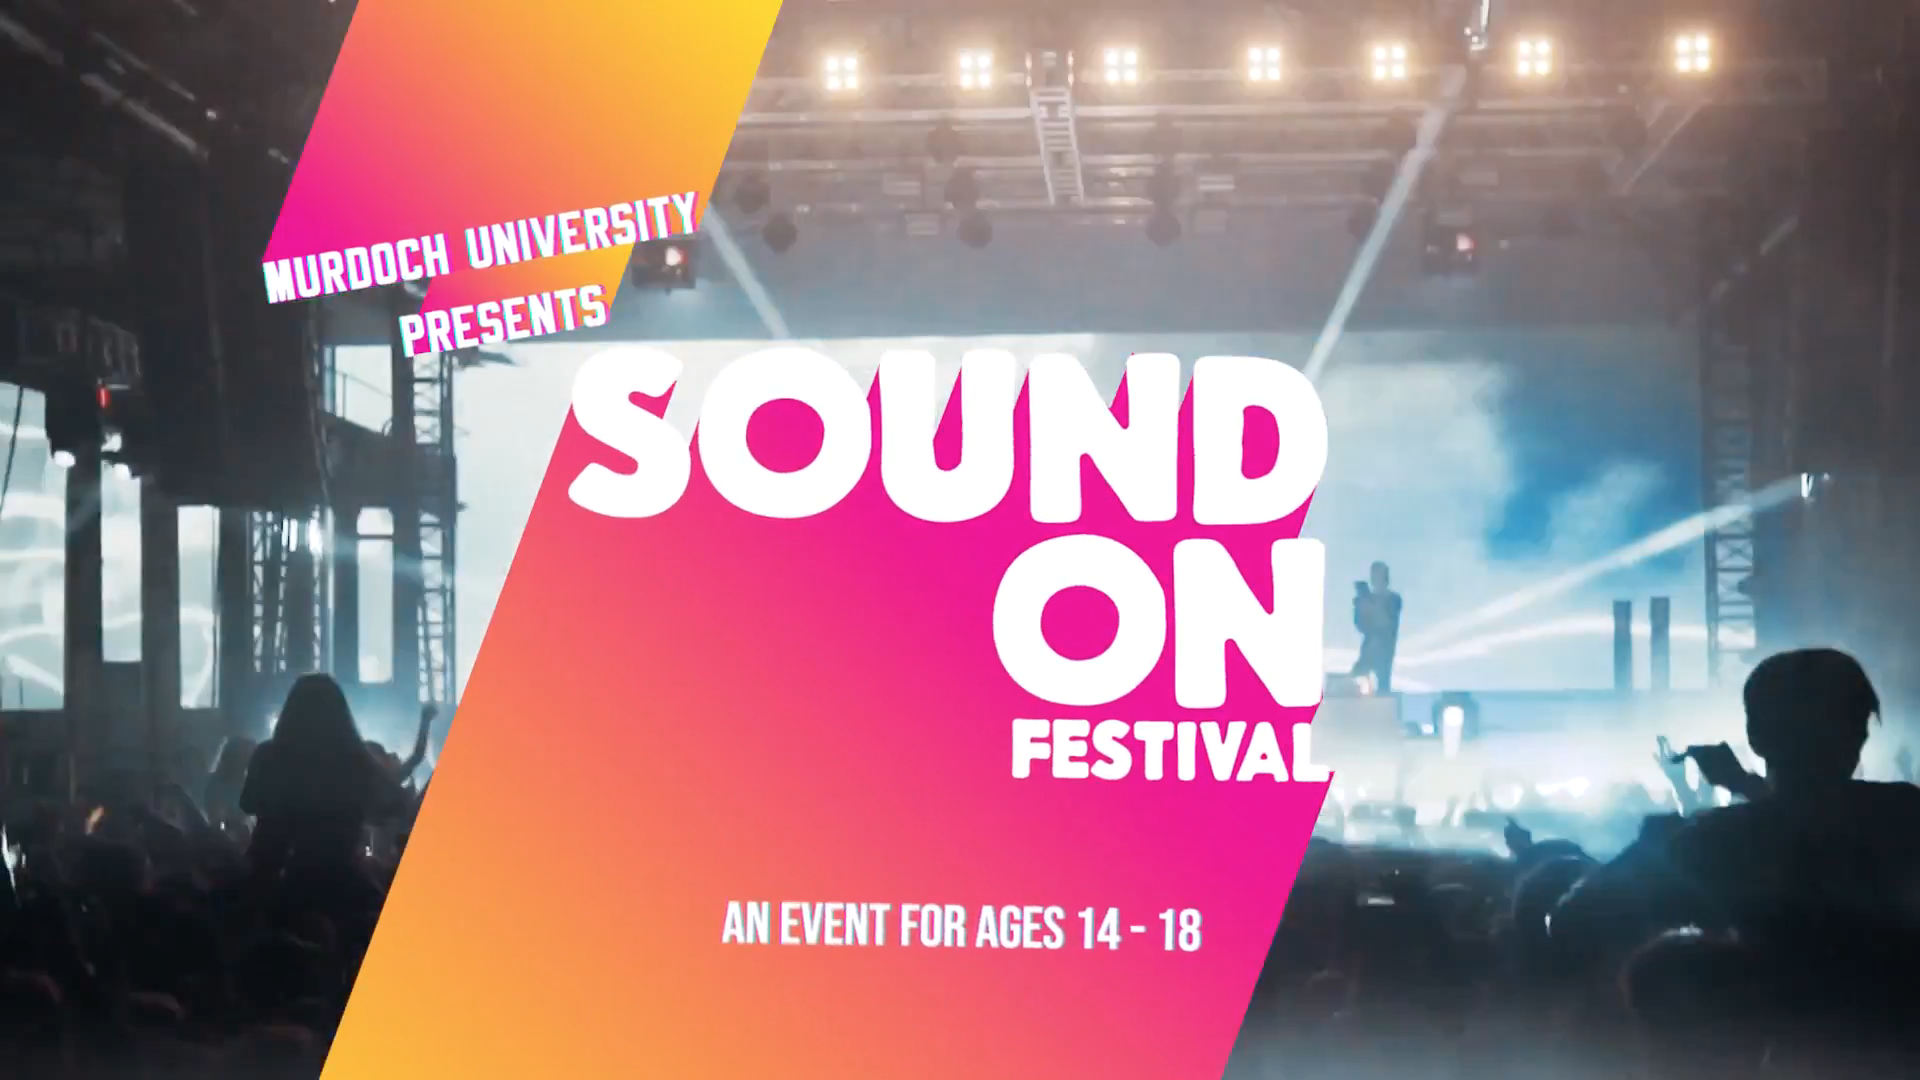 Sound on Festival - Studio Orange Video /w Animated Graphics